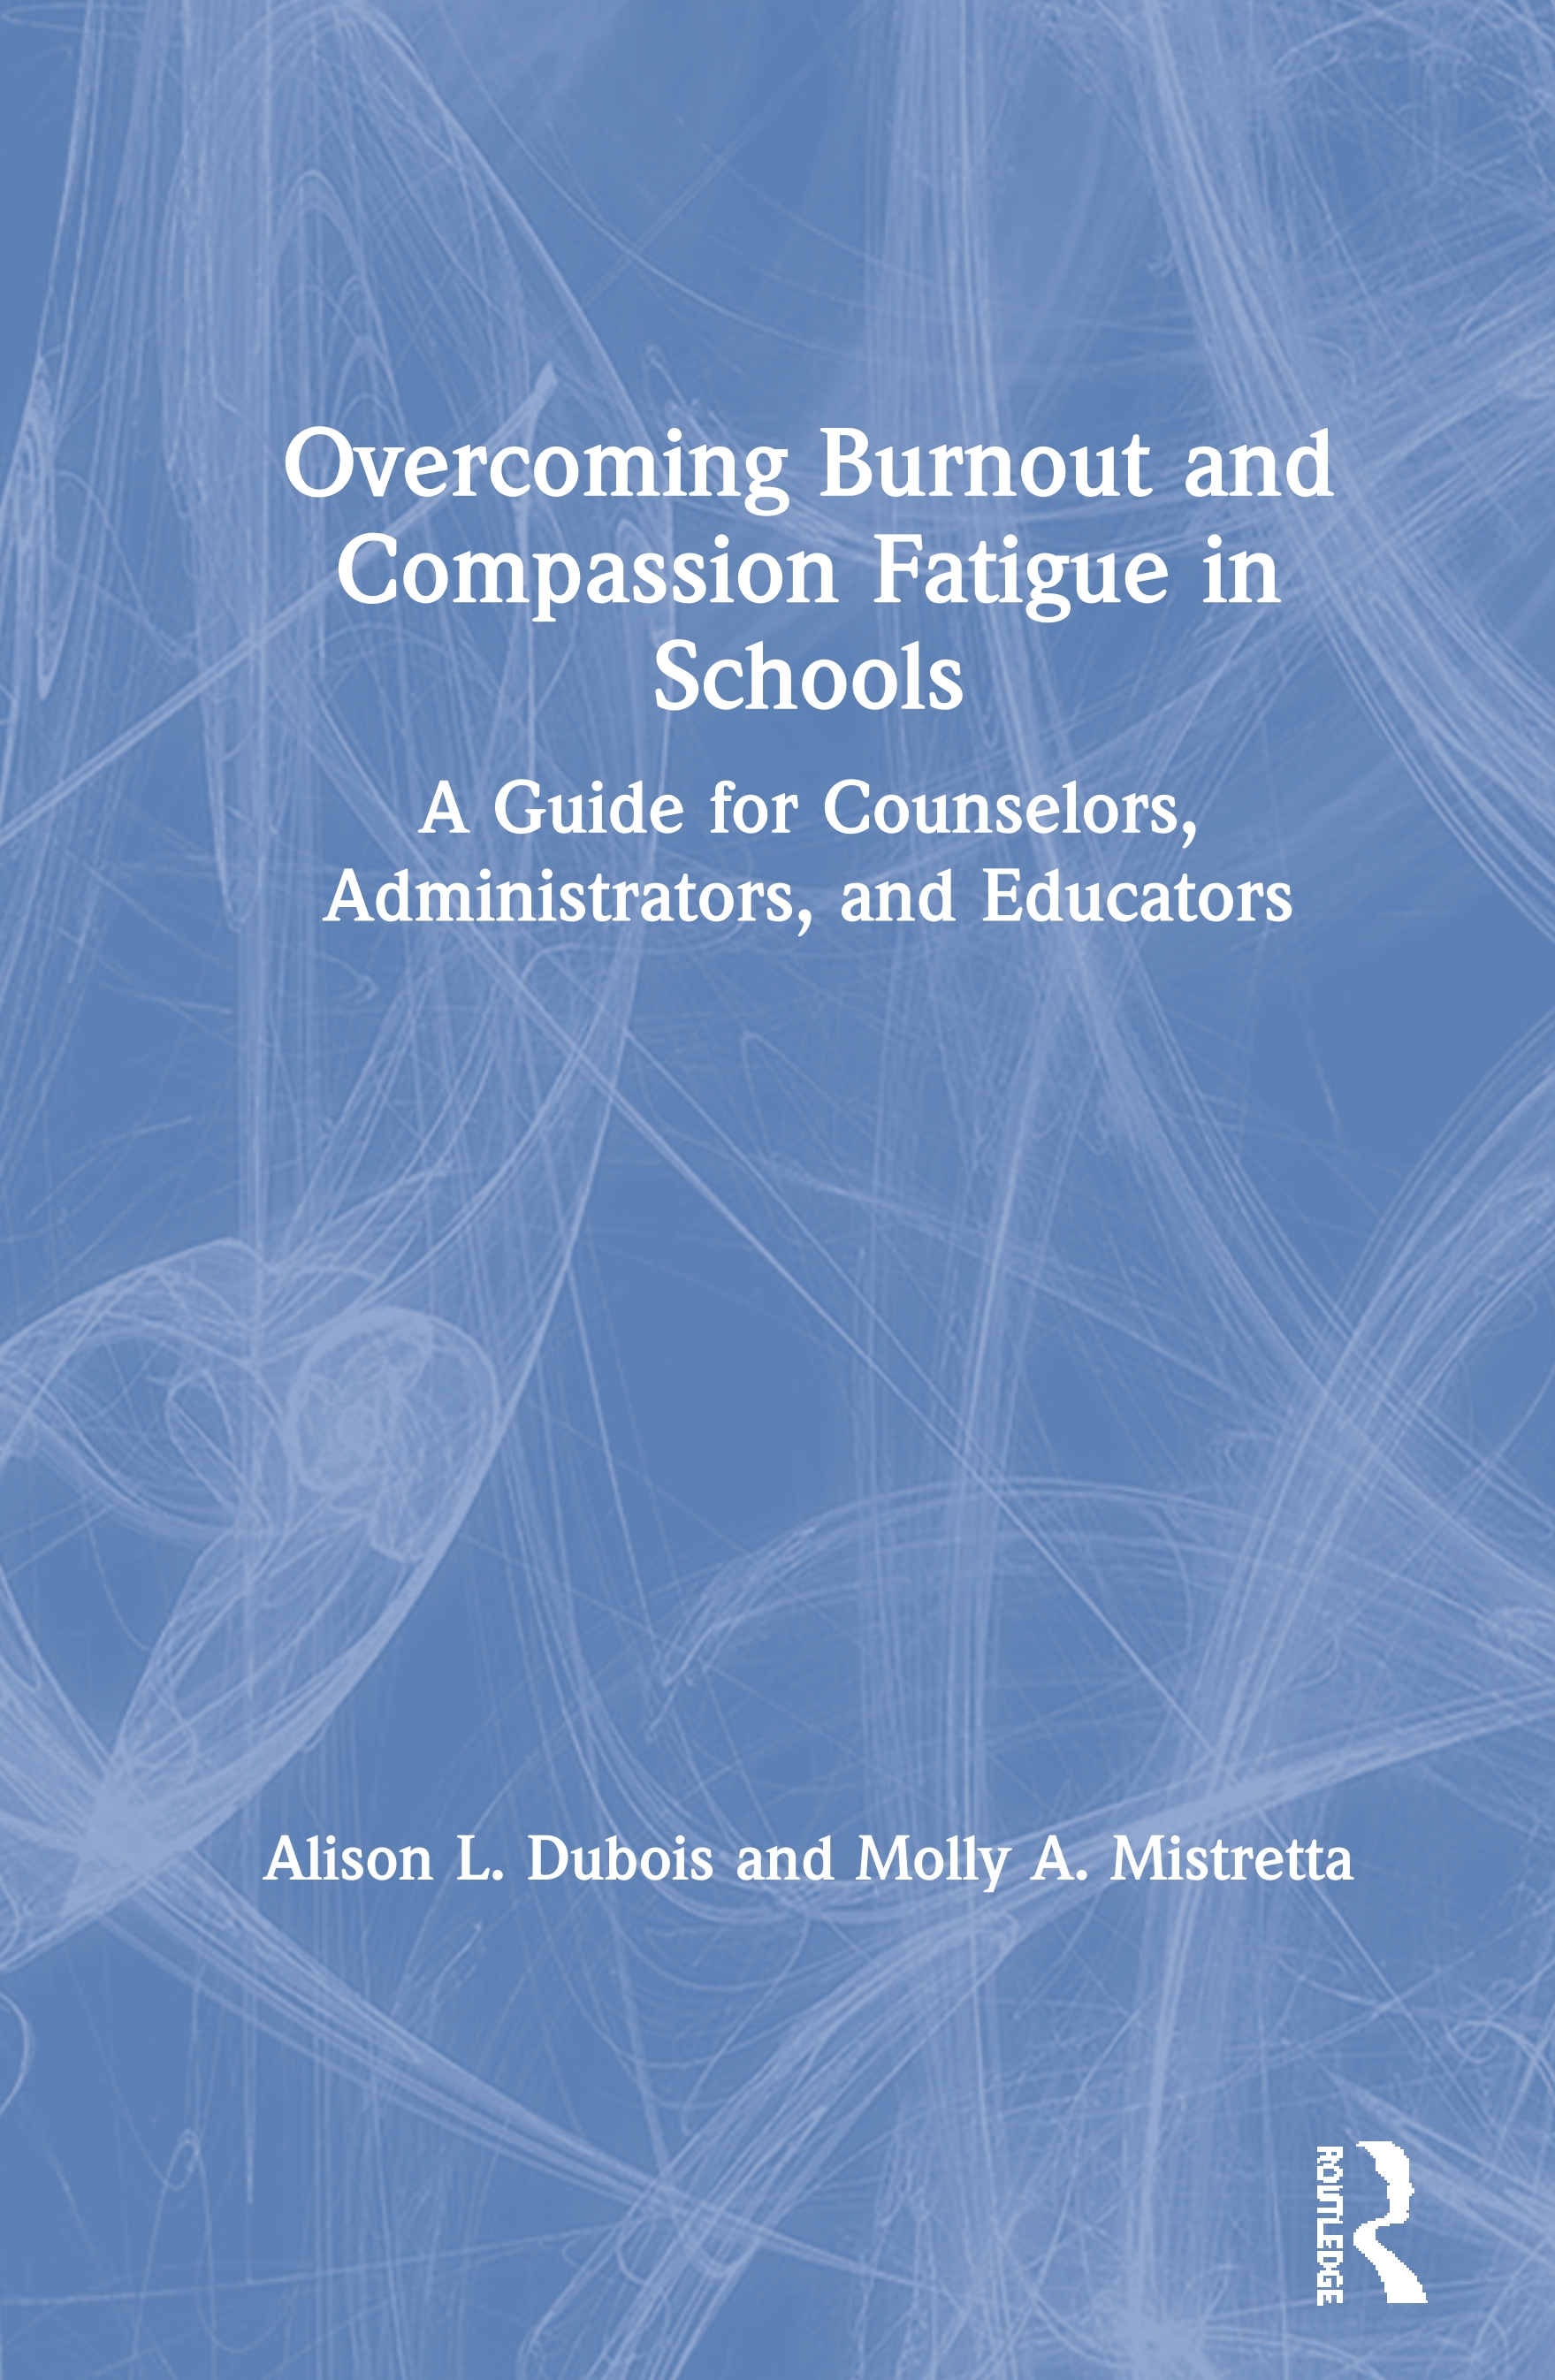 Overcoming Burnout and Compassion Fatigue in Schools: A Guide for Counselors, Administrators, and Educators book cover